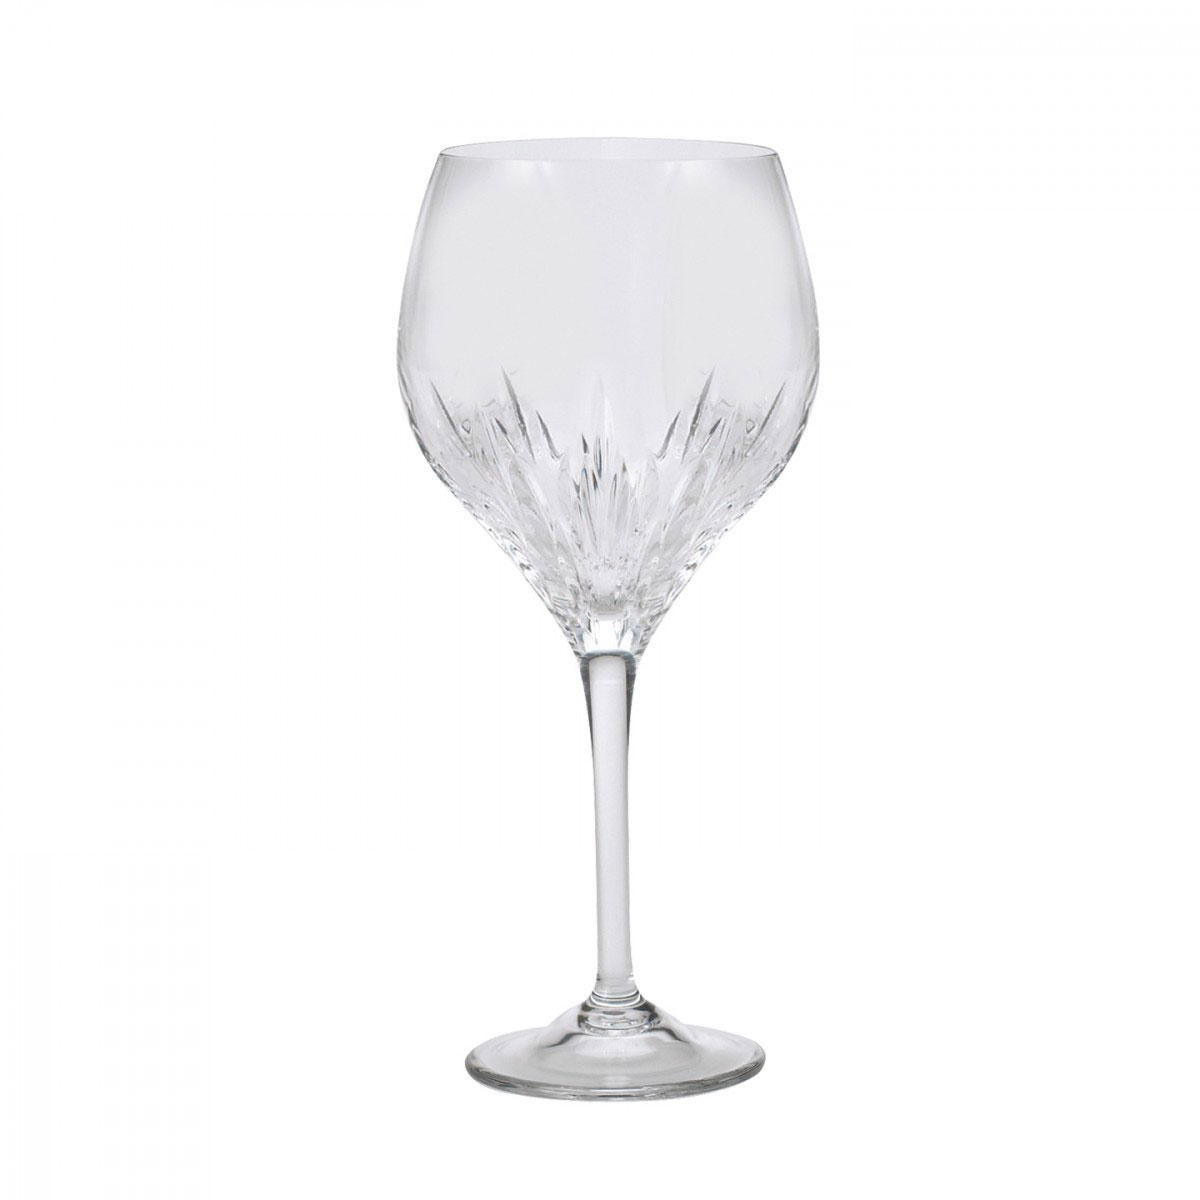 Vera Wang Wedgwood, Duchesse Crystal Goblet, Single